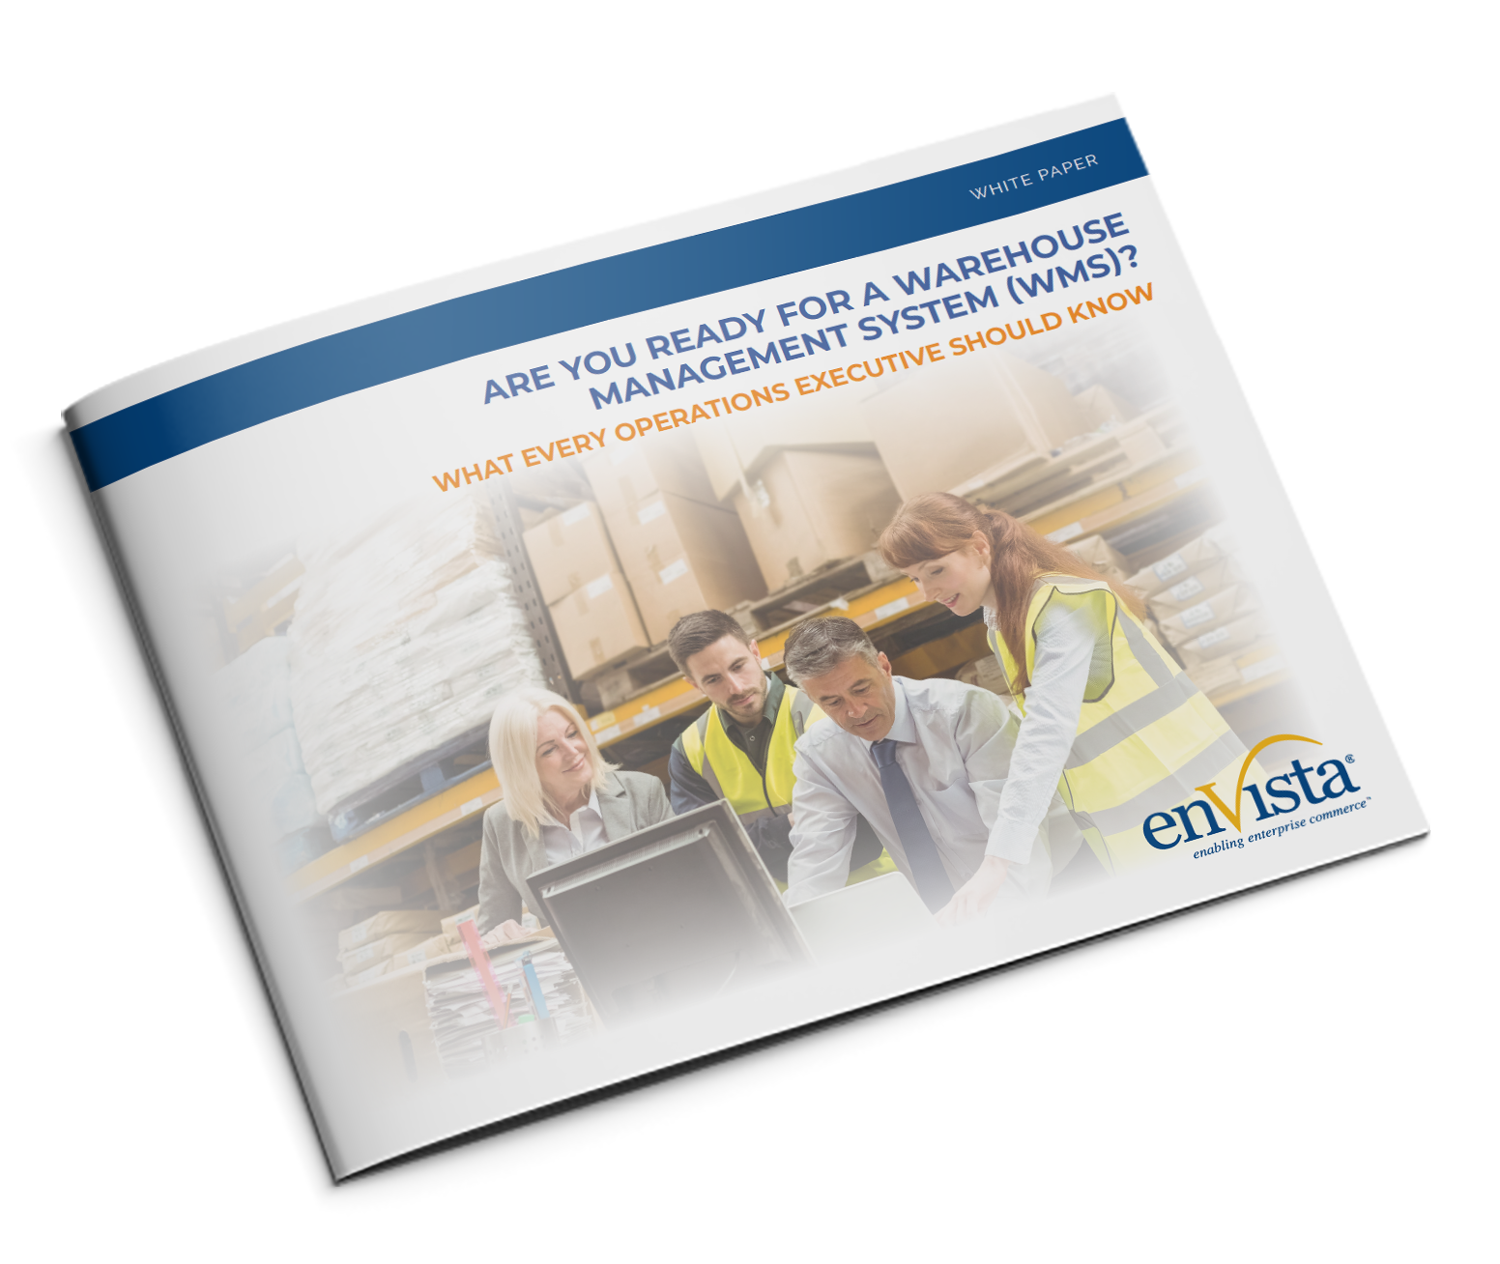 Cover Image Are You Ready For A Warehouse Management System